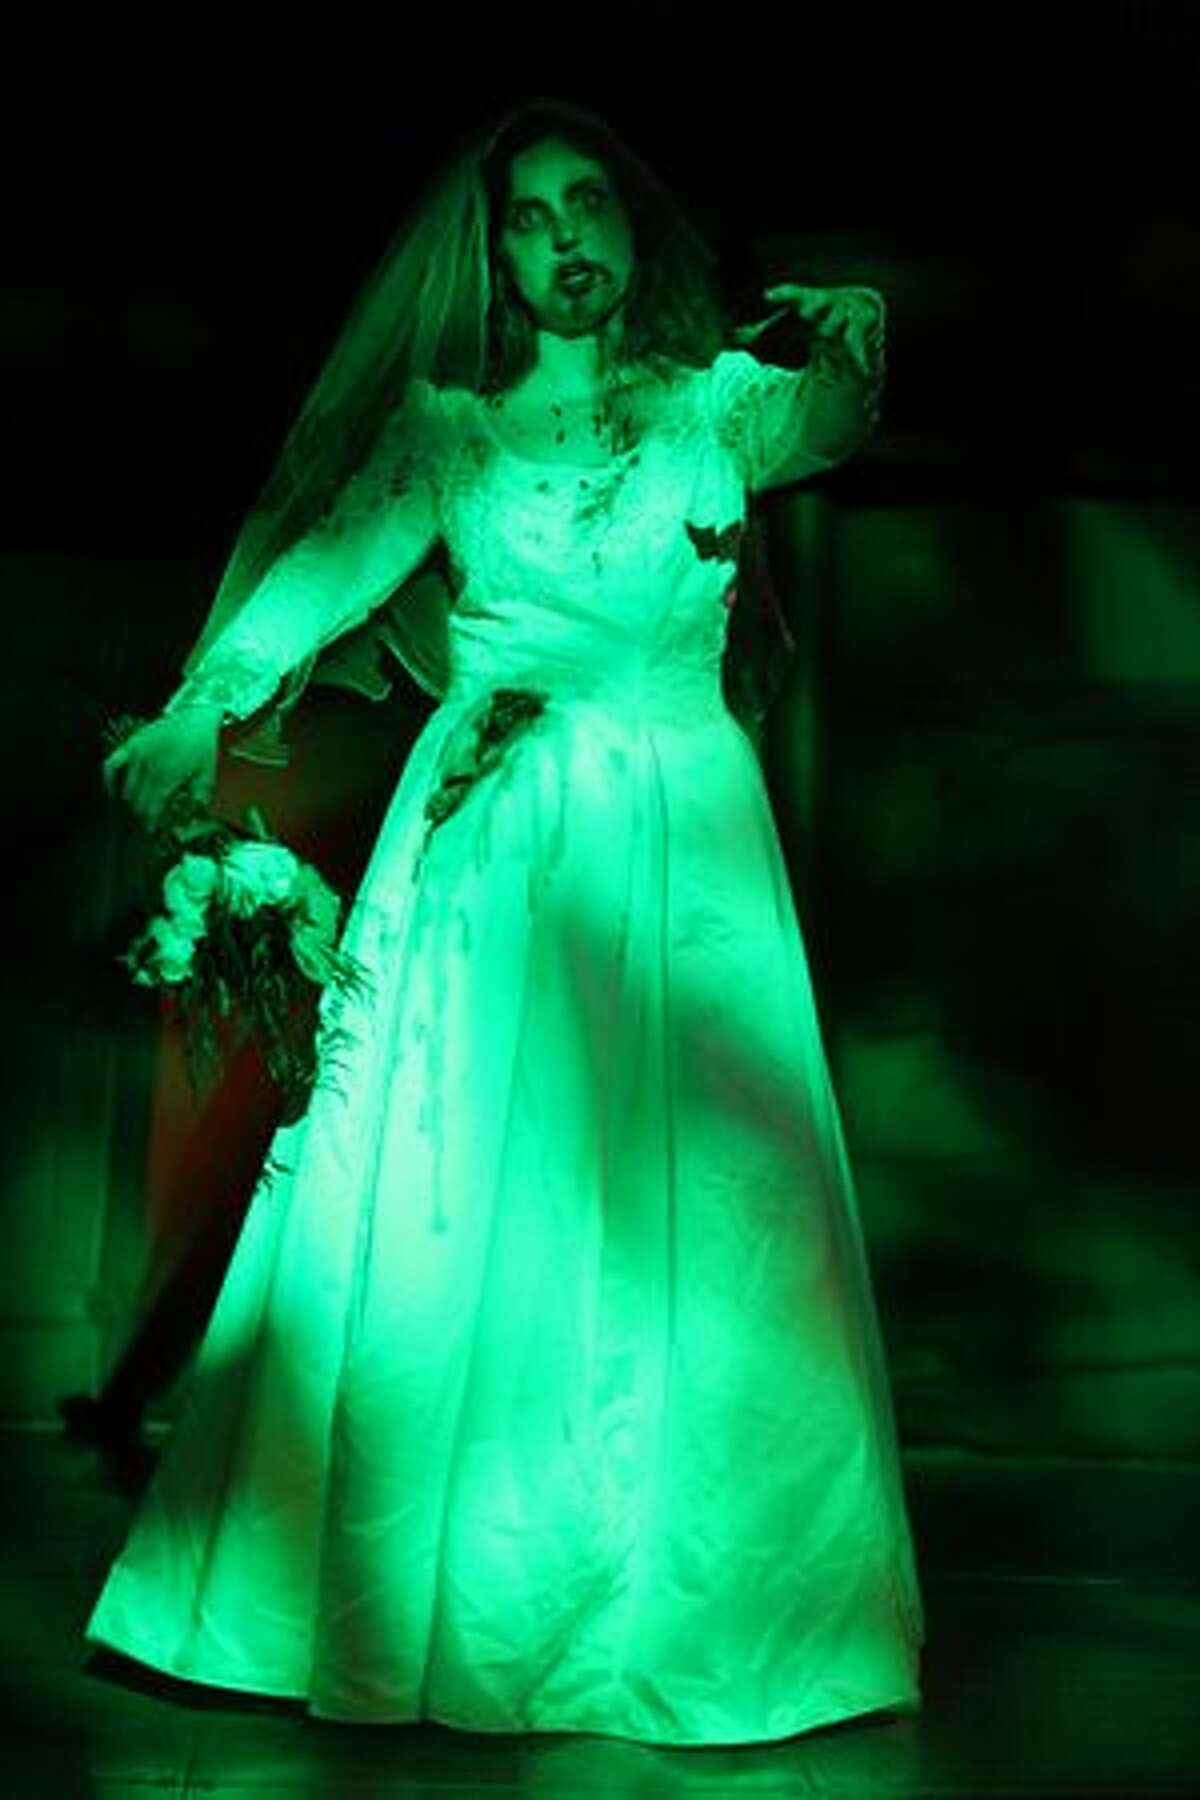 Bride Casey Russell of Seattle stands under a green spotlight during her zombie-themed wedding to Nathan Dooley on Saturday, October 30, 2010 at the EMP and Science Fiction Museum in Seattle. The wedding and a mass renewal of wedding vows after the legal ceremony were performed by actor Bruce Campbell as part of ZomBcon, a zombie convention. Campbell is known as a B-movie actor and star in a number of horror films.